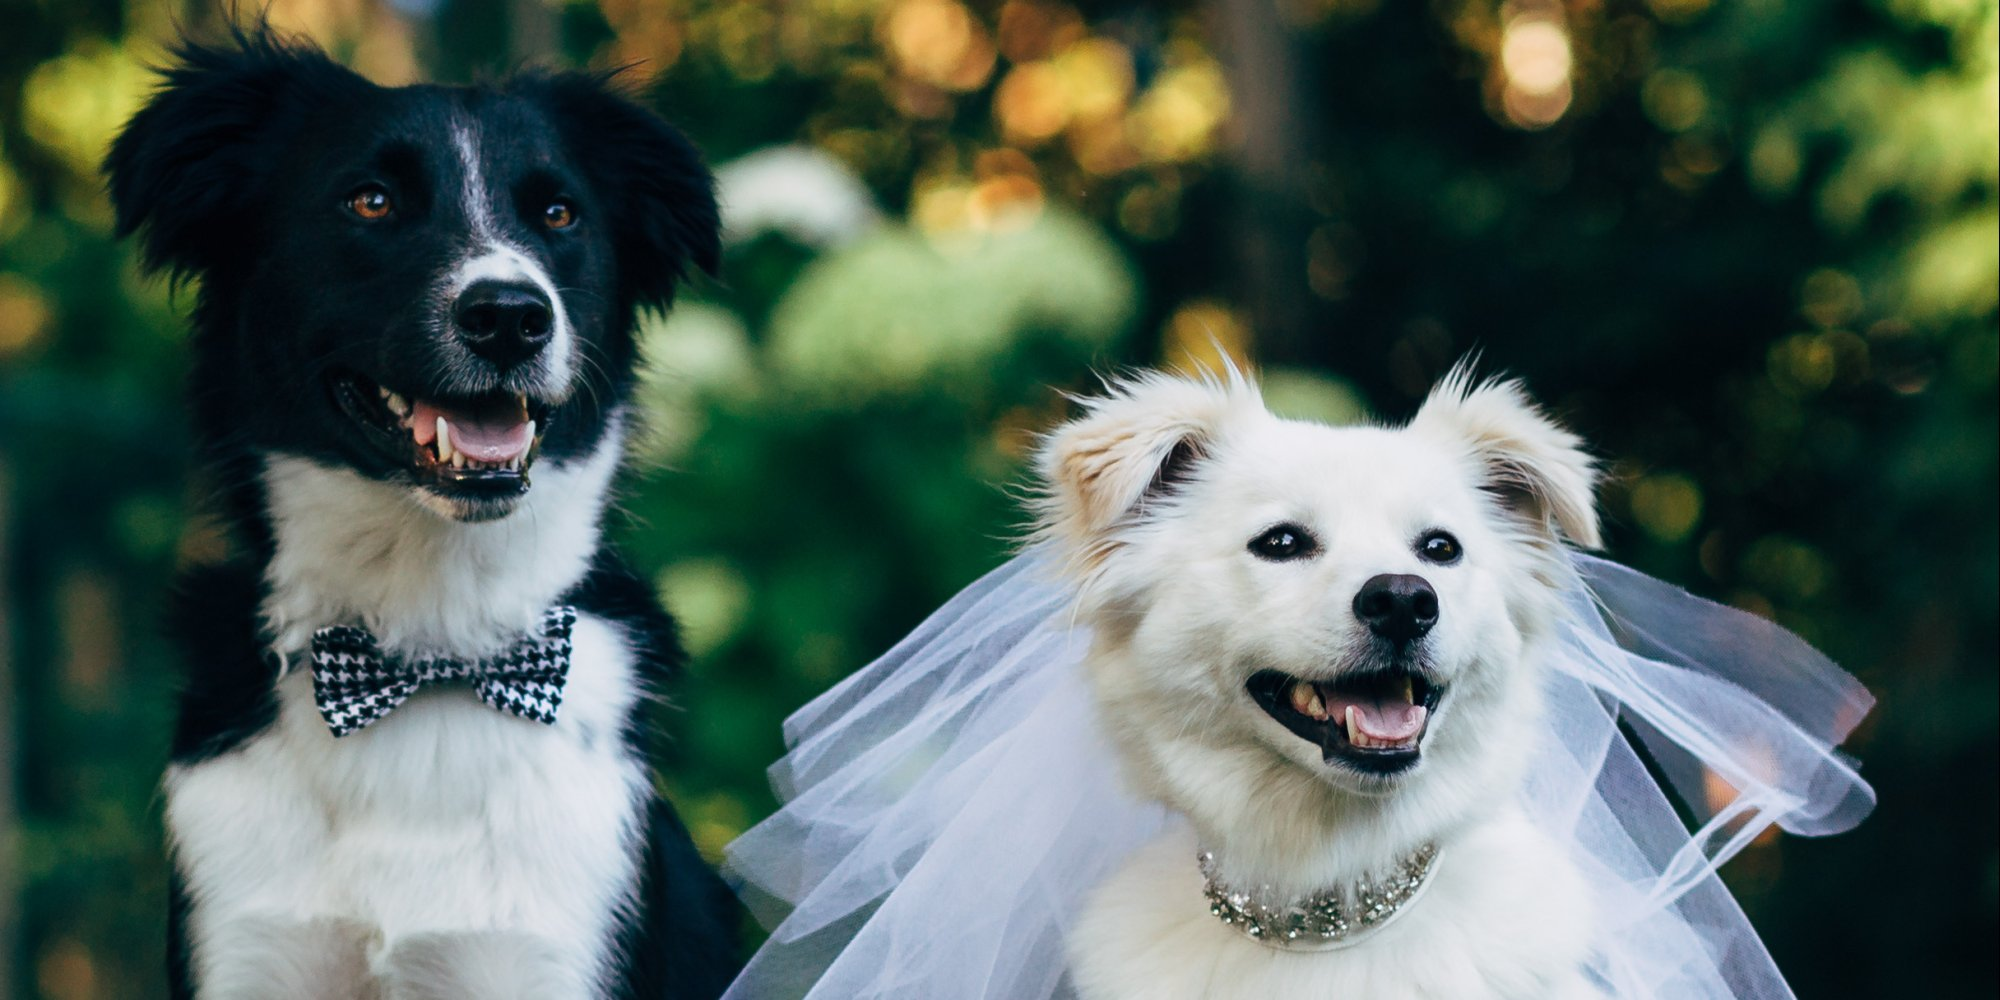 Cute Marriage Couple Wallpaper 10 Signs You And Your Dog Are Basically An Old Married Couple